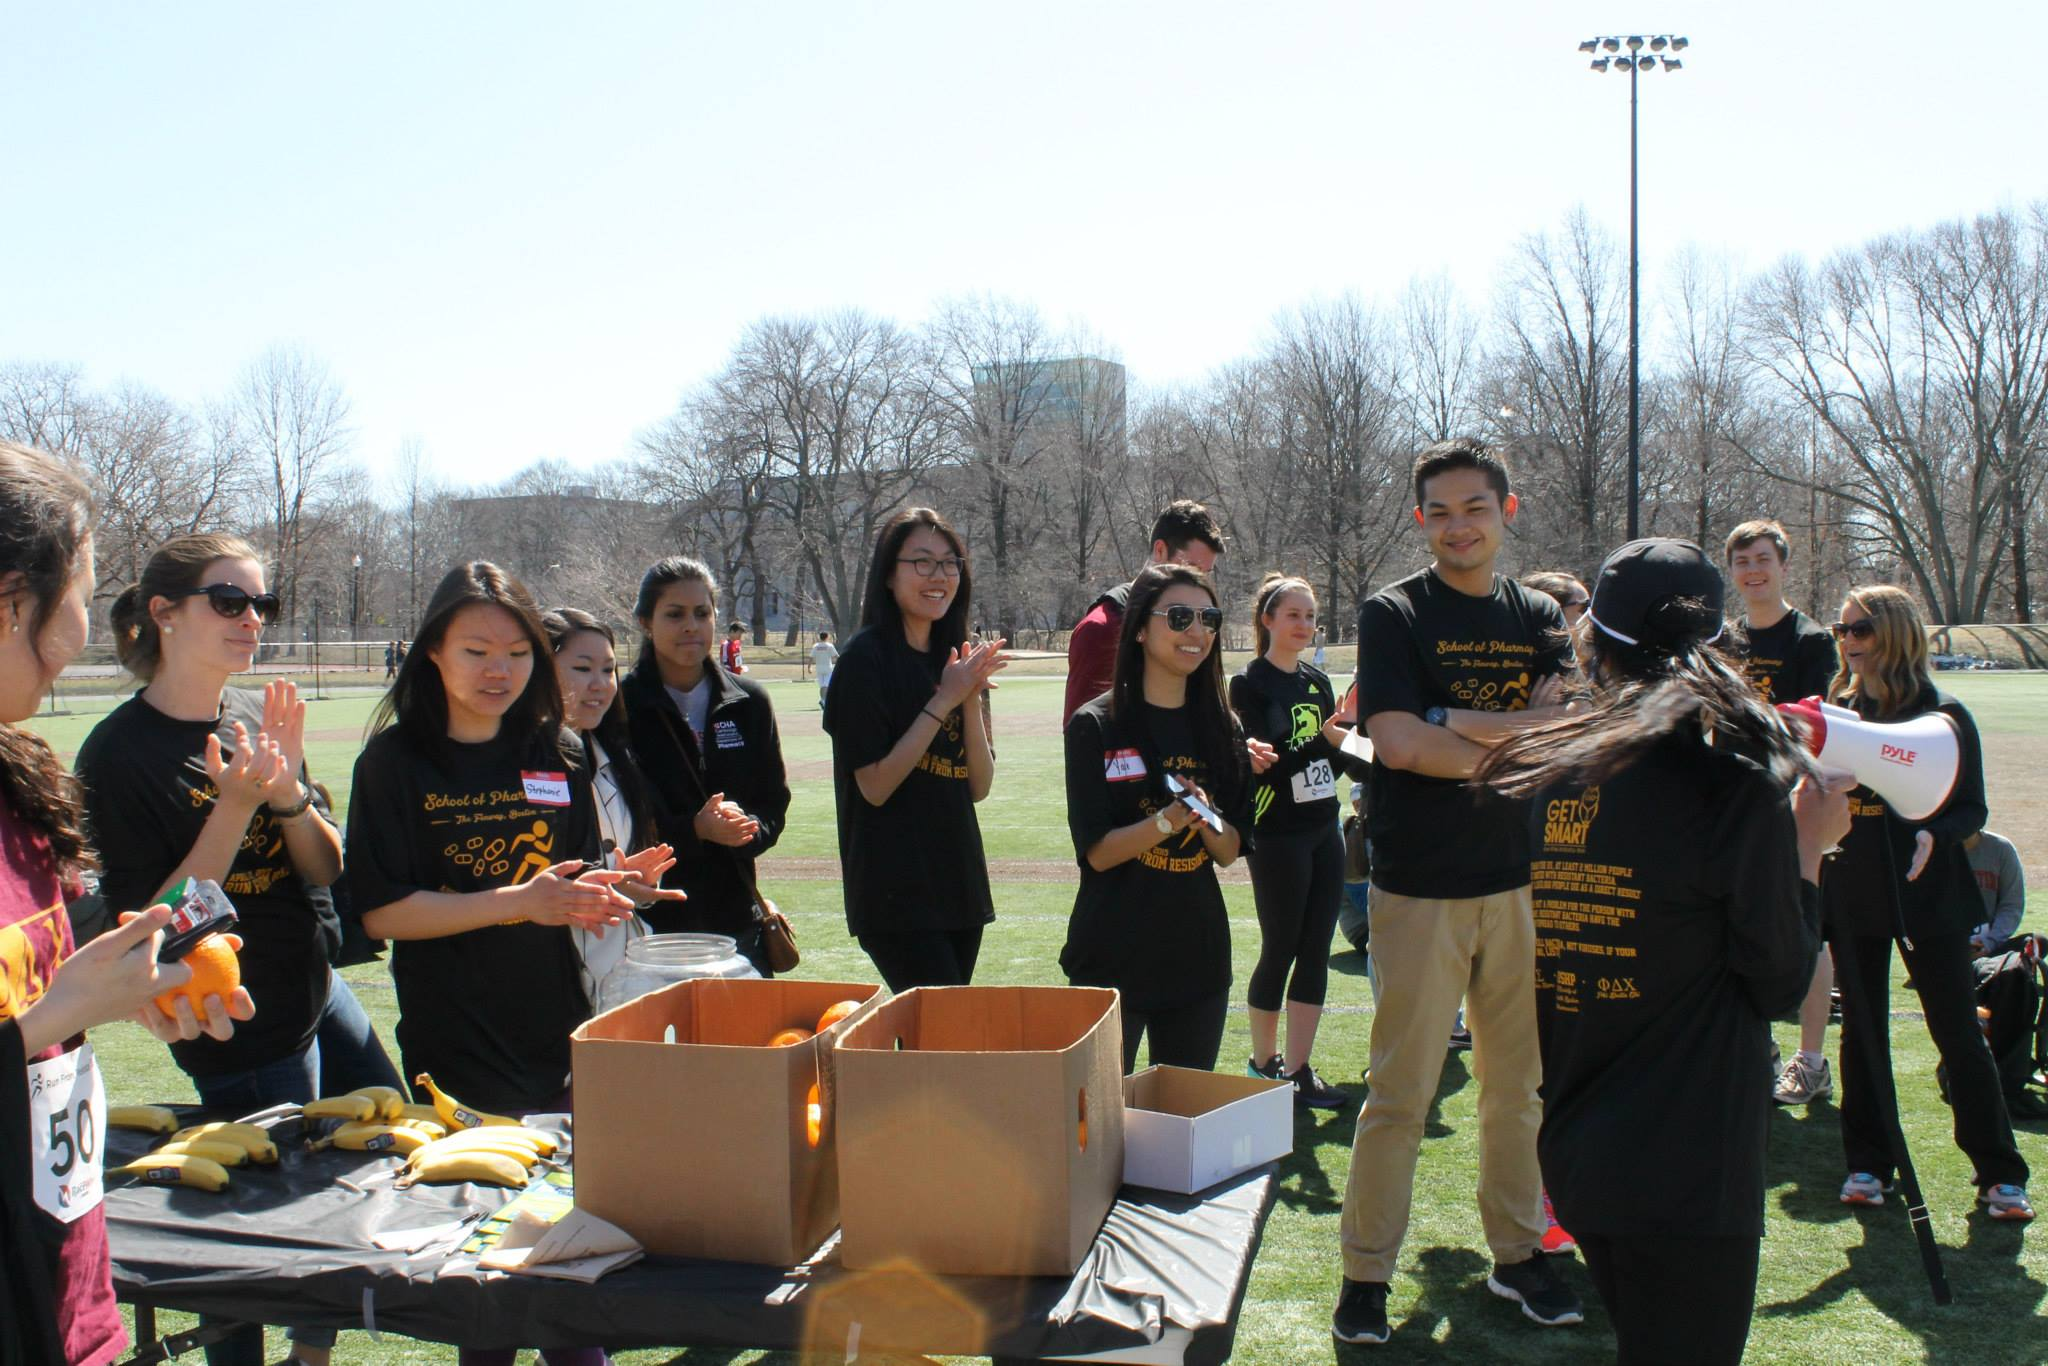 Pharmacy Student Groups - Engaged in Community